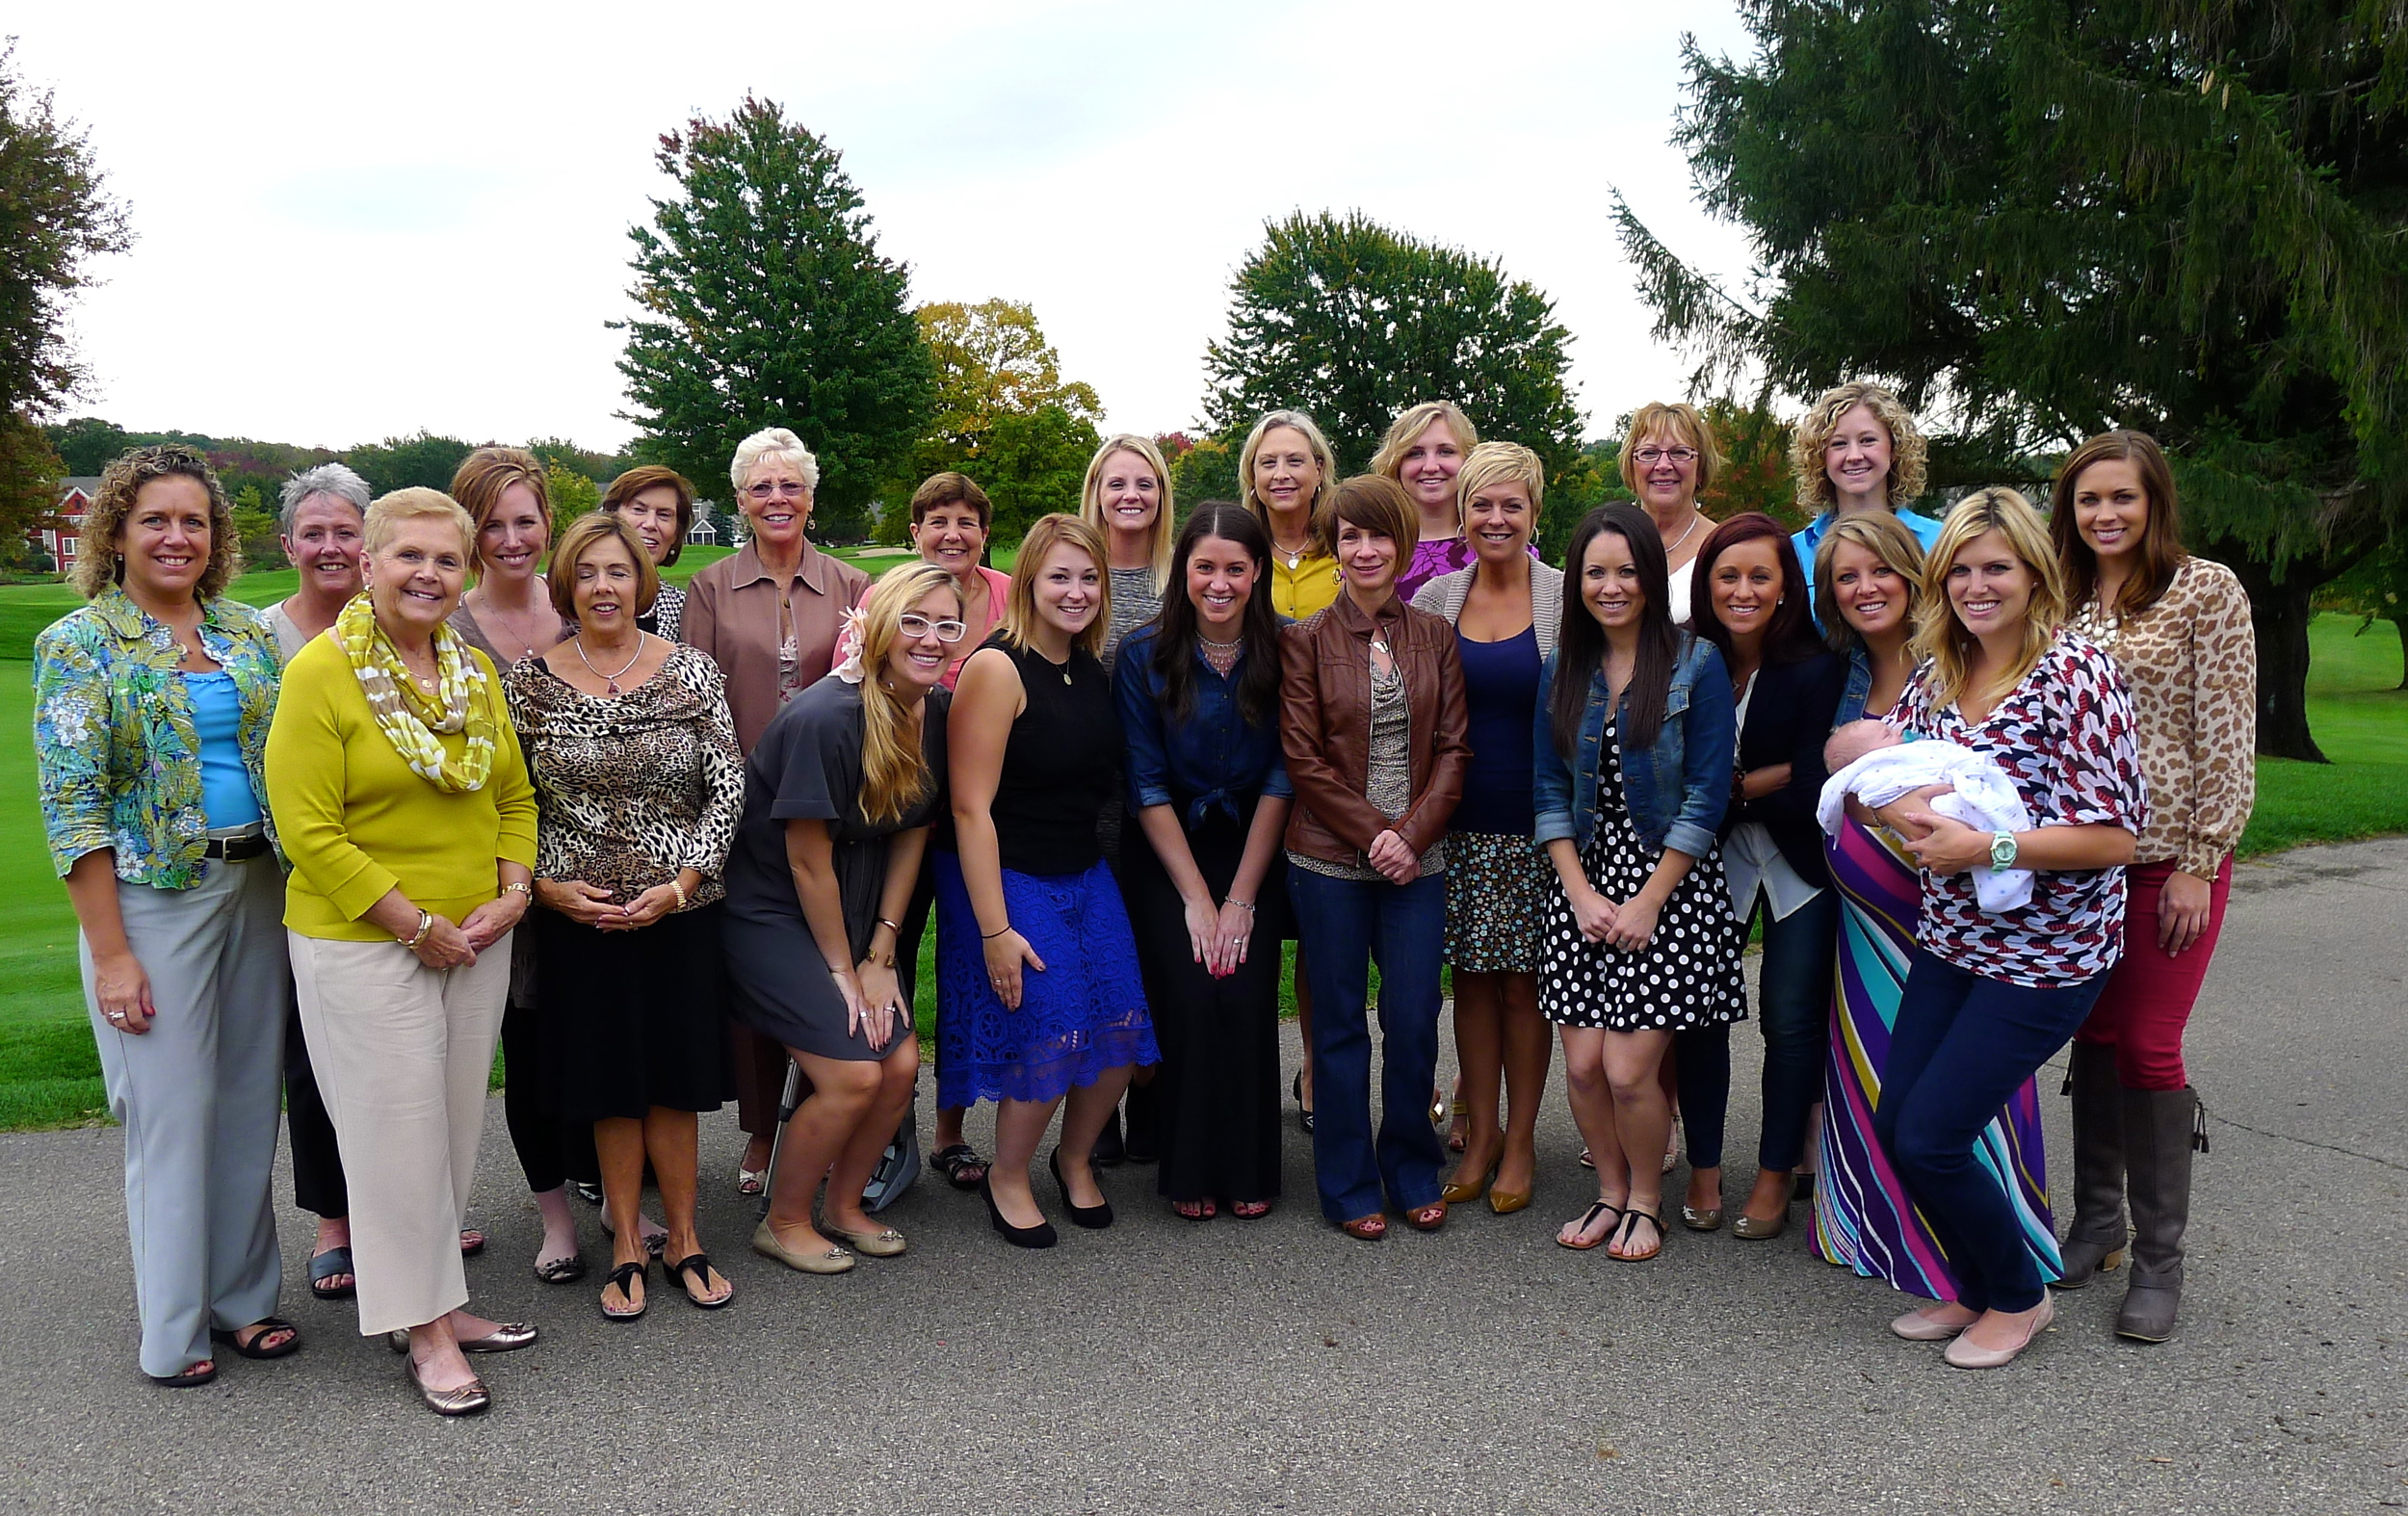 BRIDAL SHOWER HOSTED BY SUE VANTUINEN AND MARI KLADDER ON SATURDAY OCT. 5TH AT WATERMARK COUNTRY CLUB.